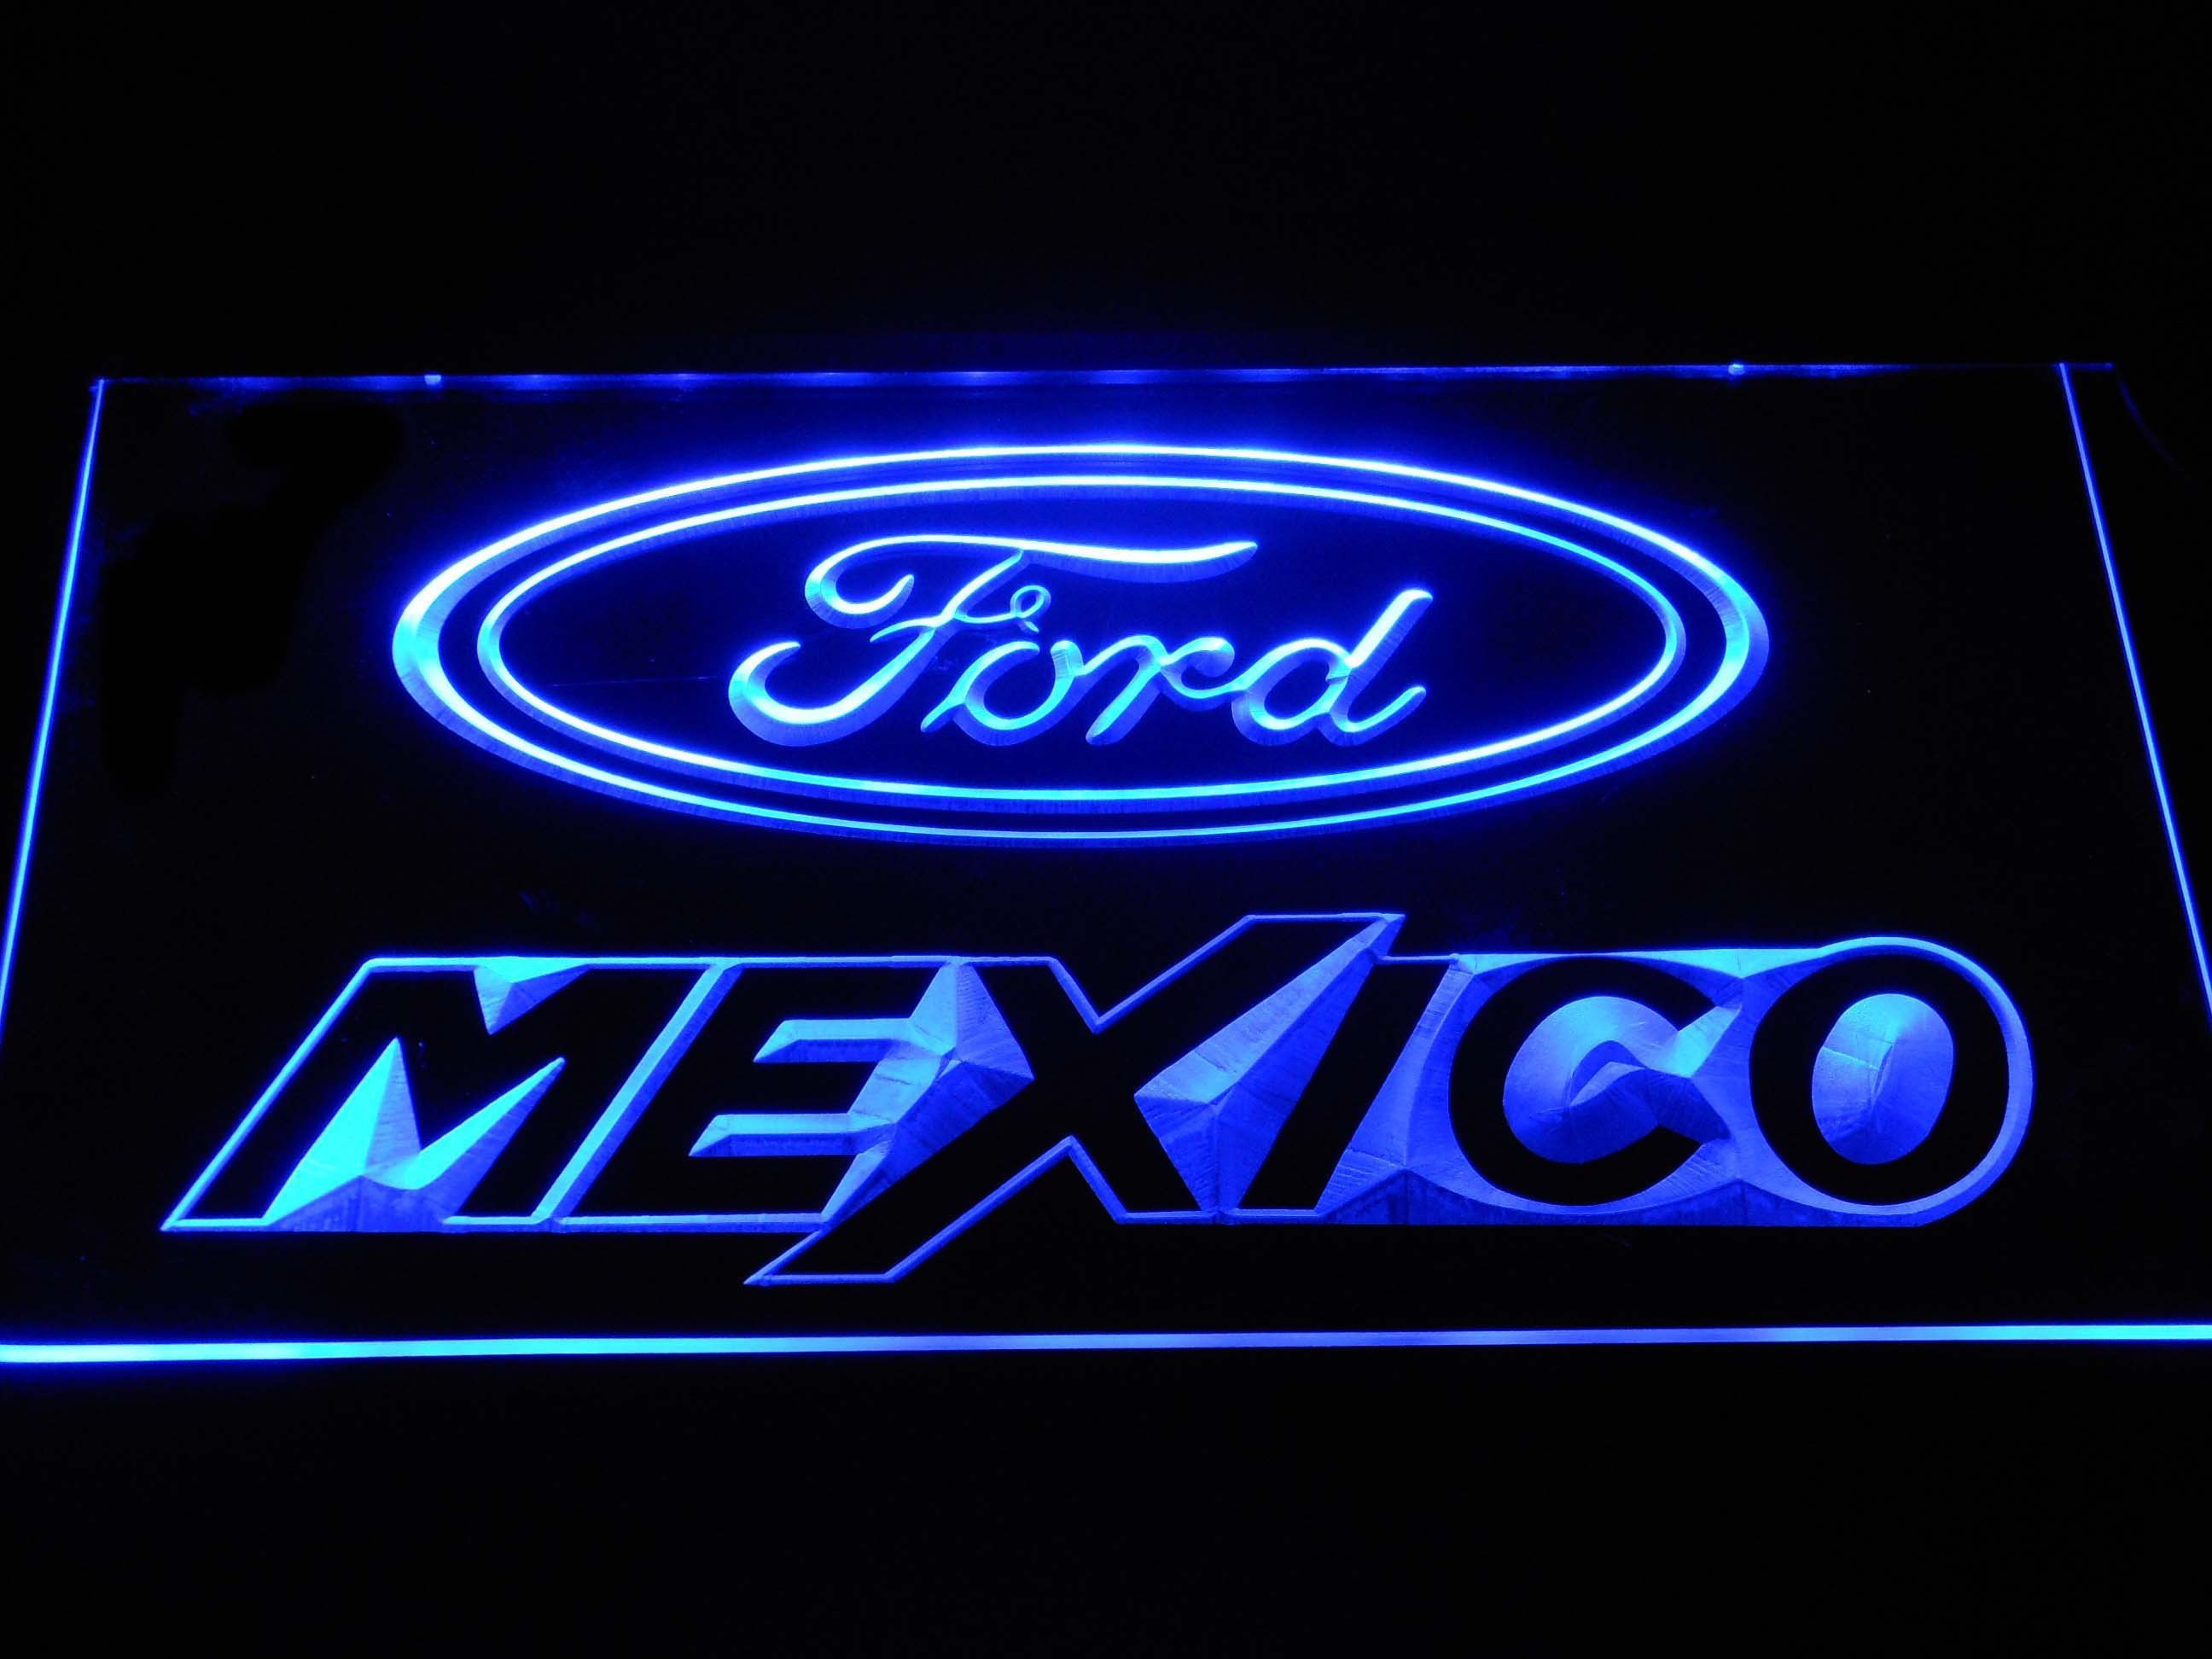 Ford Mexico Led Neon Sign Neon Signs Led Neon Signs Sign Display